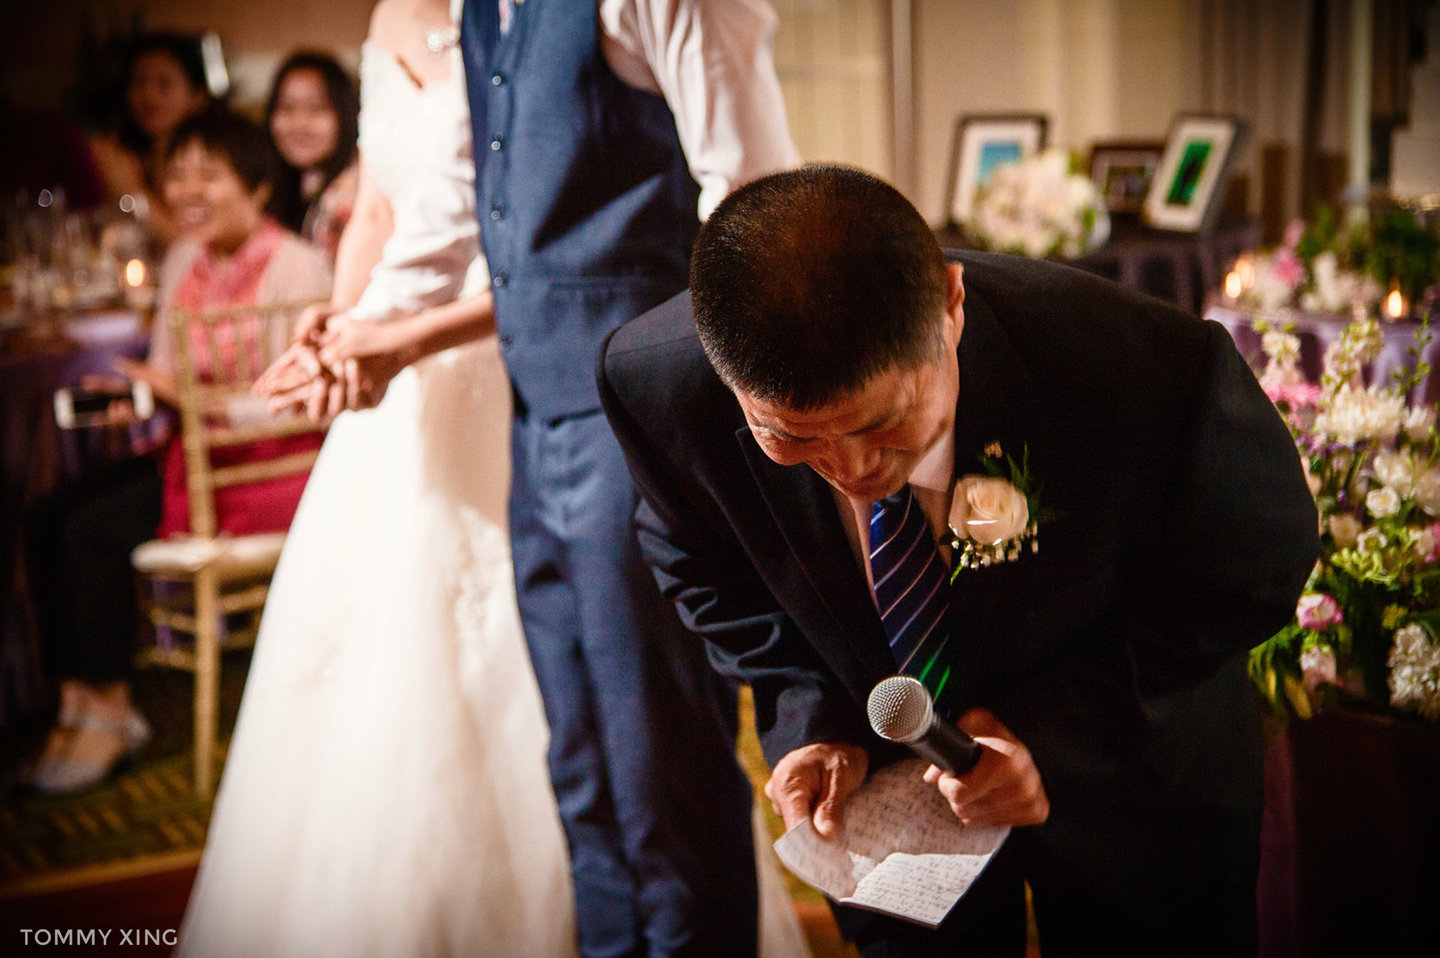 Paradise Point Resort Wedding Xiaolu & Bin San Diego 圣地亚哥婚礼摄影跟拍 Tommy Xing Photography 洛杉矶婚礼婚纱照摄影师 238.jpg